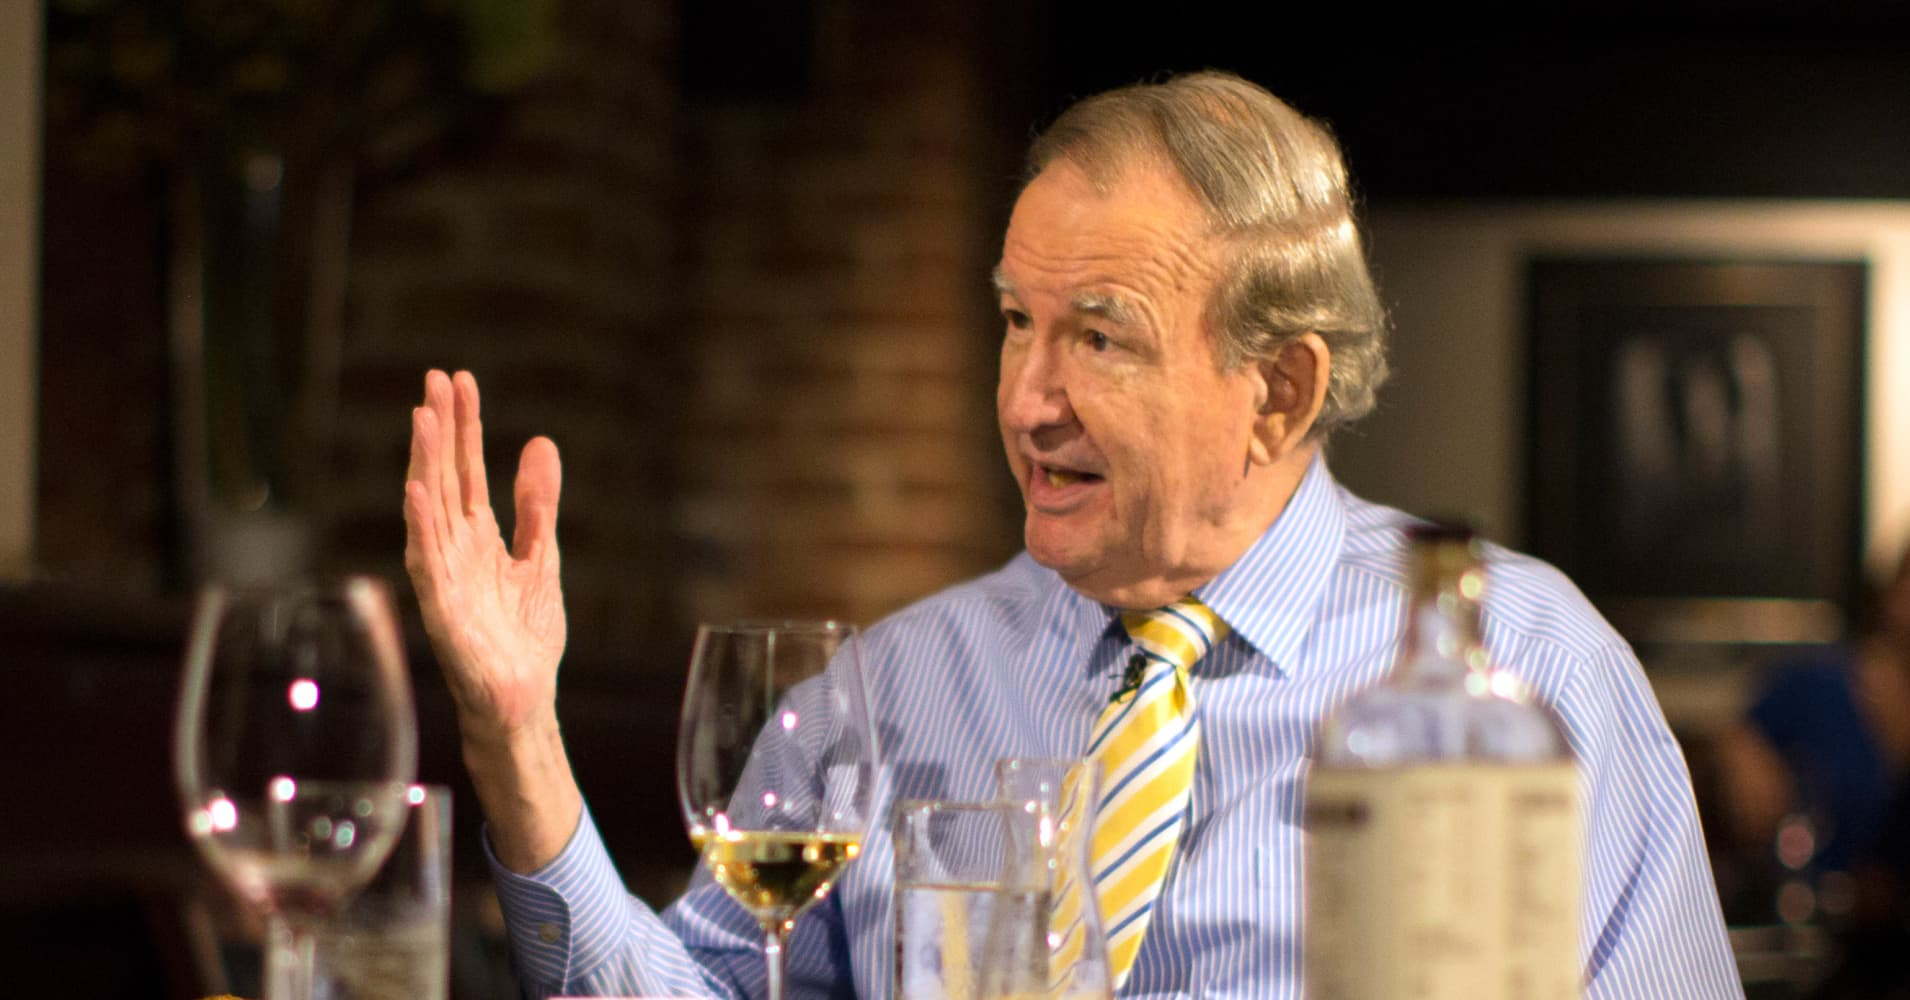 an analysis of the fallacies of pat buchanans economics He's got nowhere near the media presence he had just a few years ago, but  make no mistake: pat buchanan hasn't gone anywhere, and he.